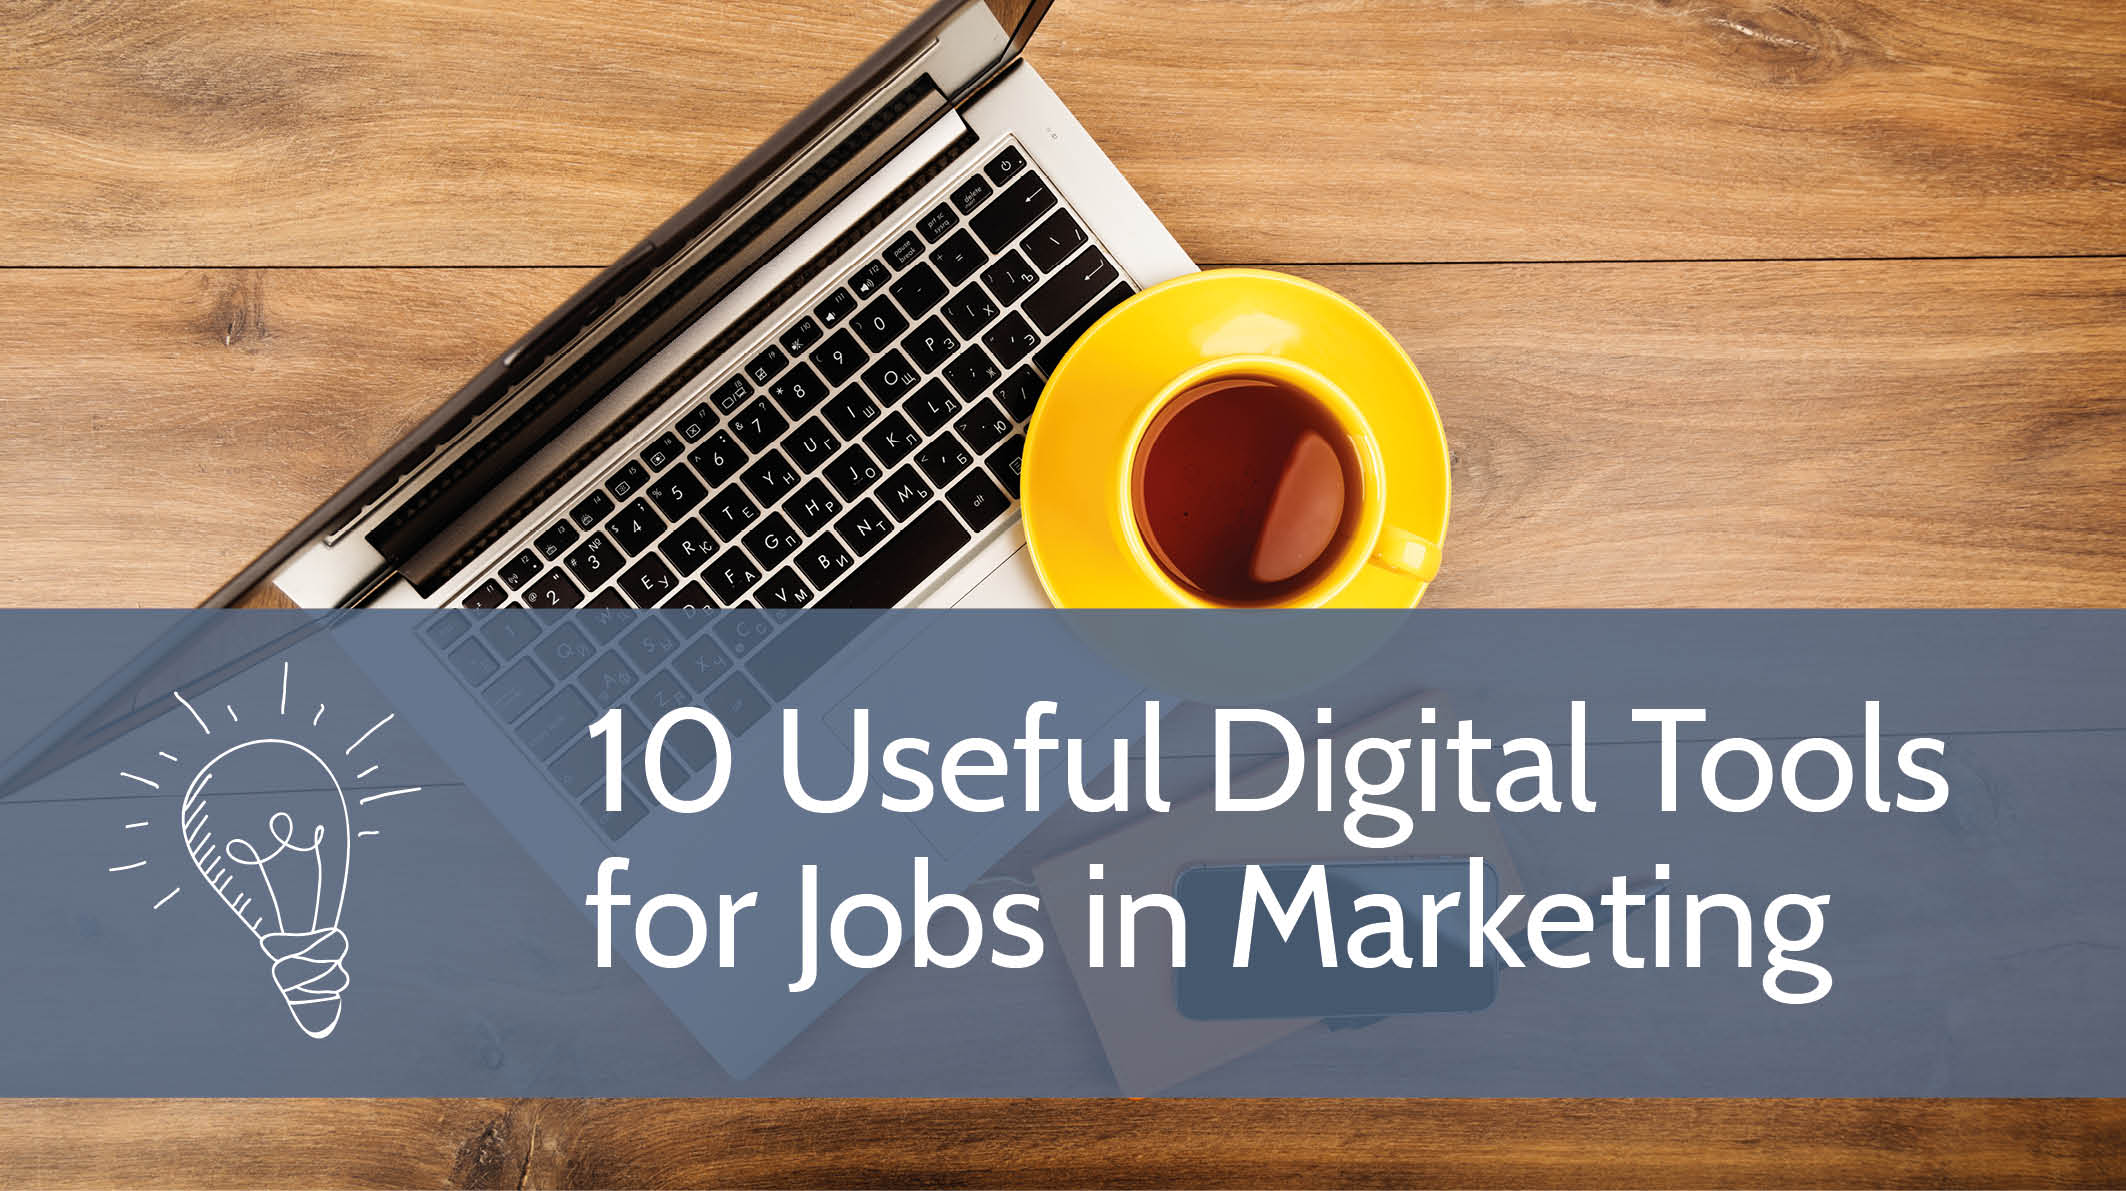 10 Useful Digital Tools for Jobs in Marketing